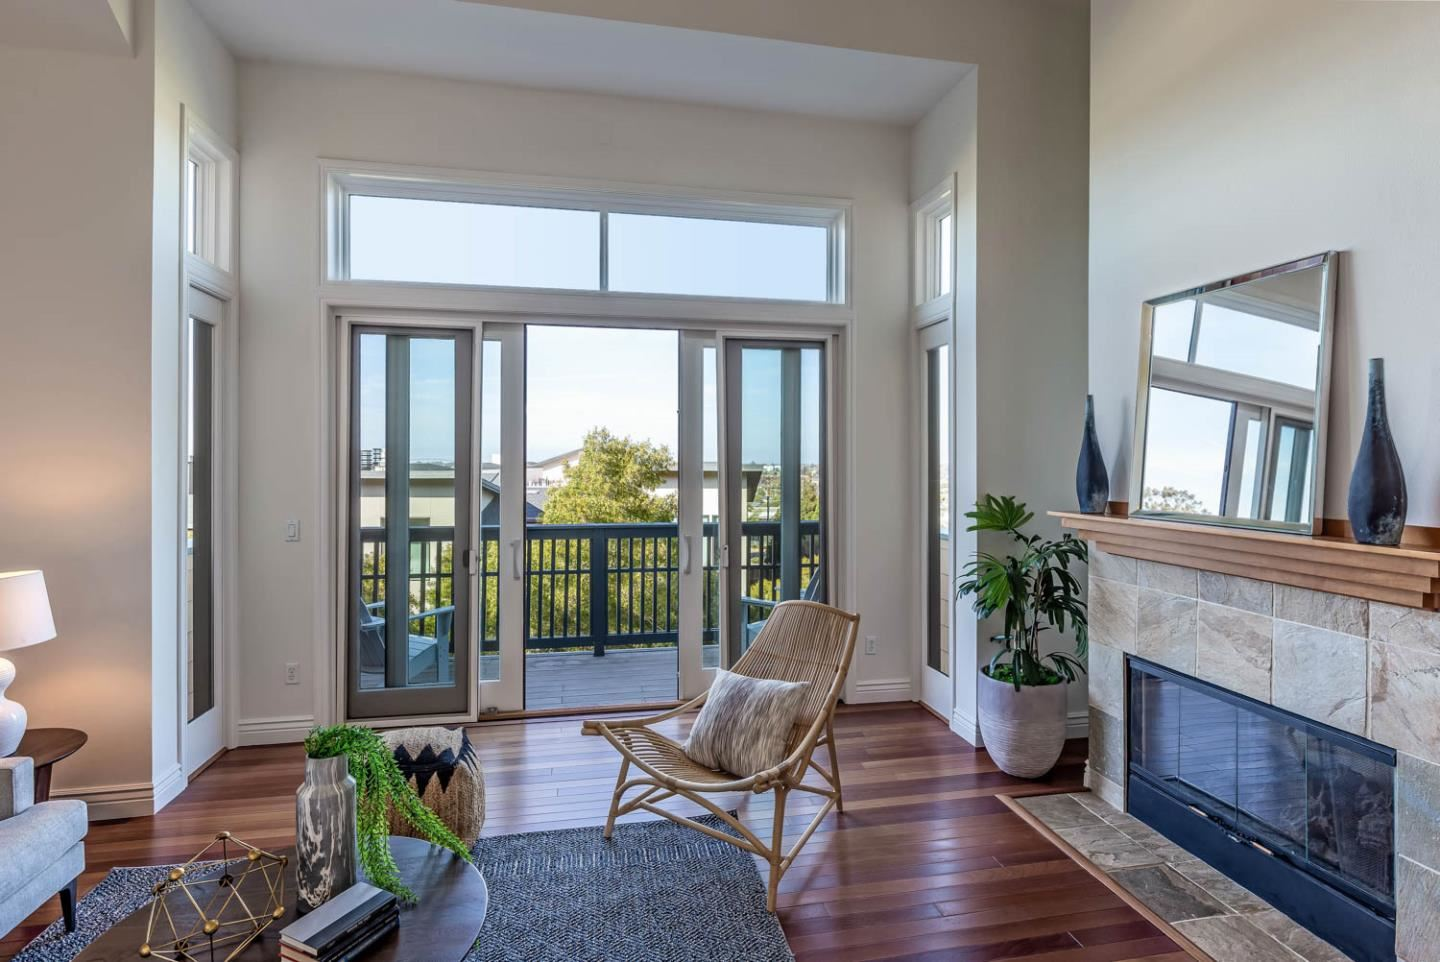 Photo for 80 Edgewood Place, BELMONT, CA 94002 (MLS # ML81846470)